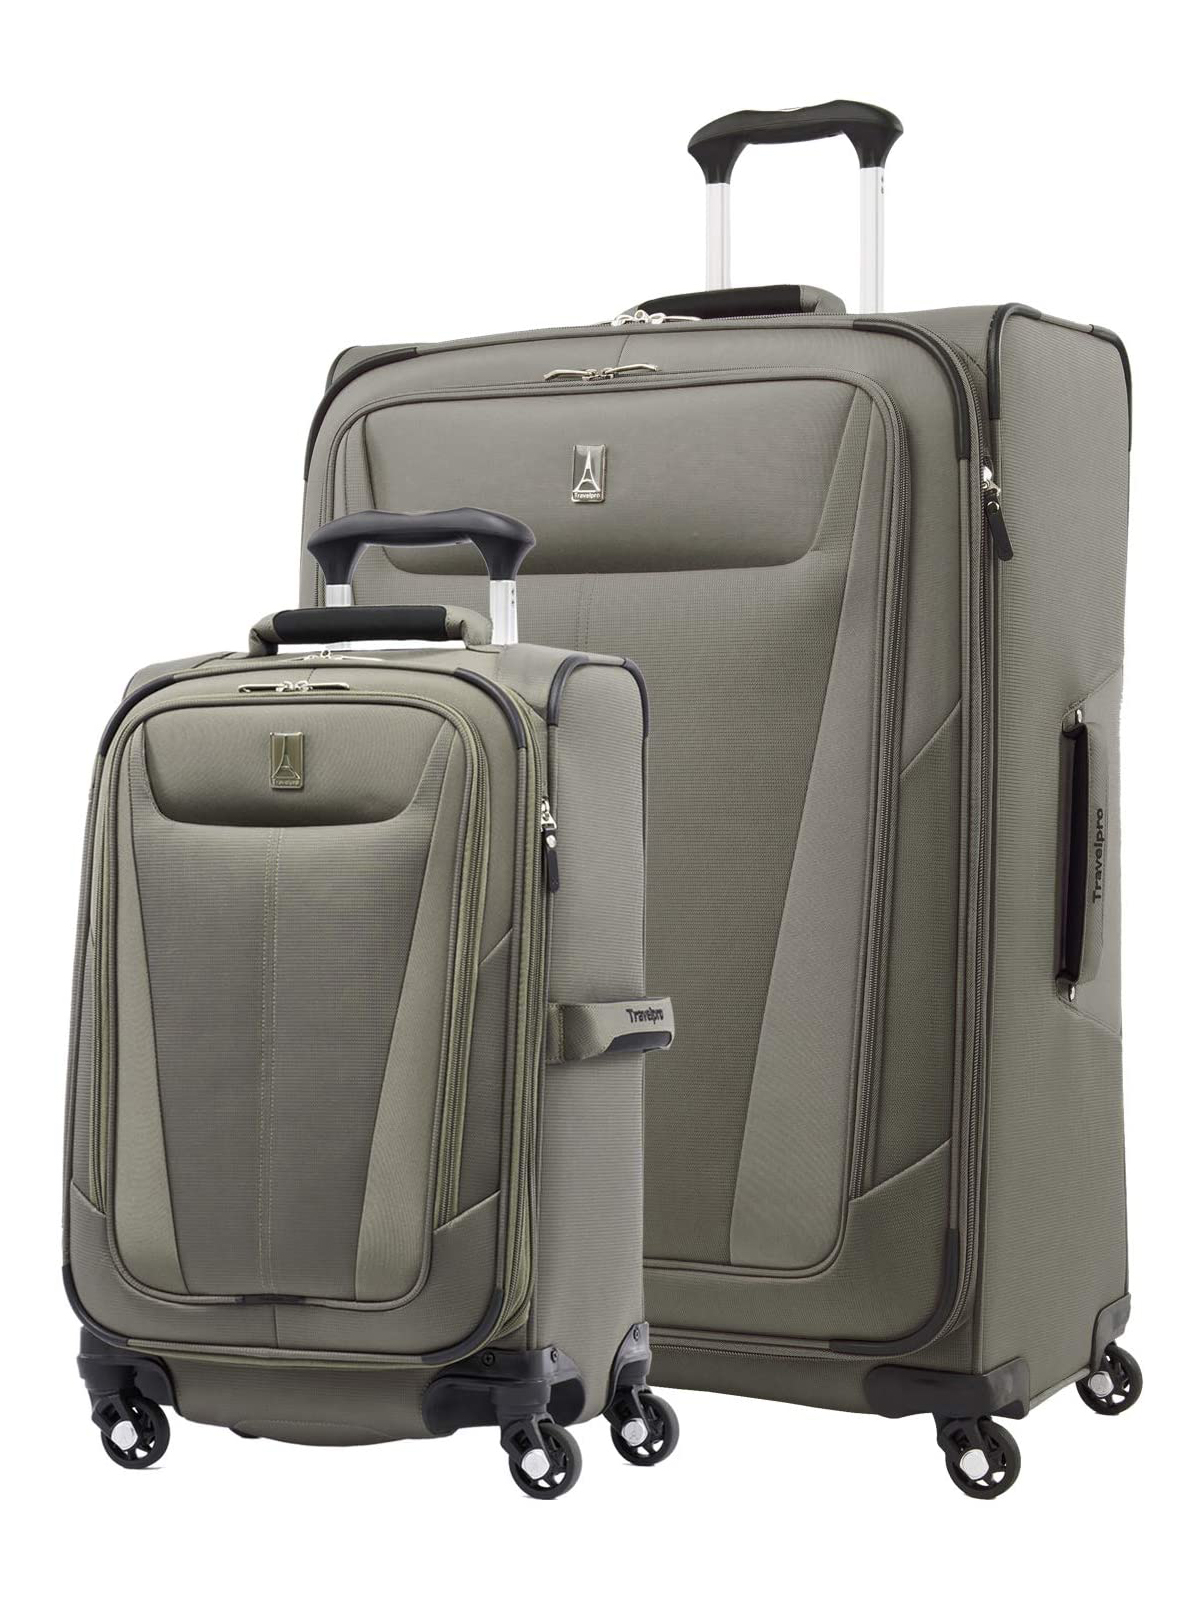 Travelpro Maxlite 5 Set